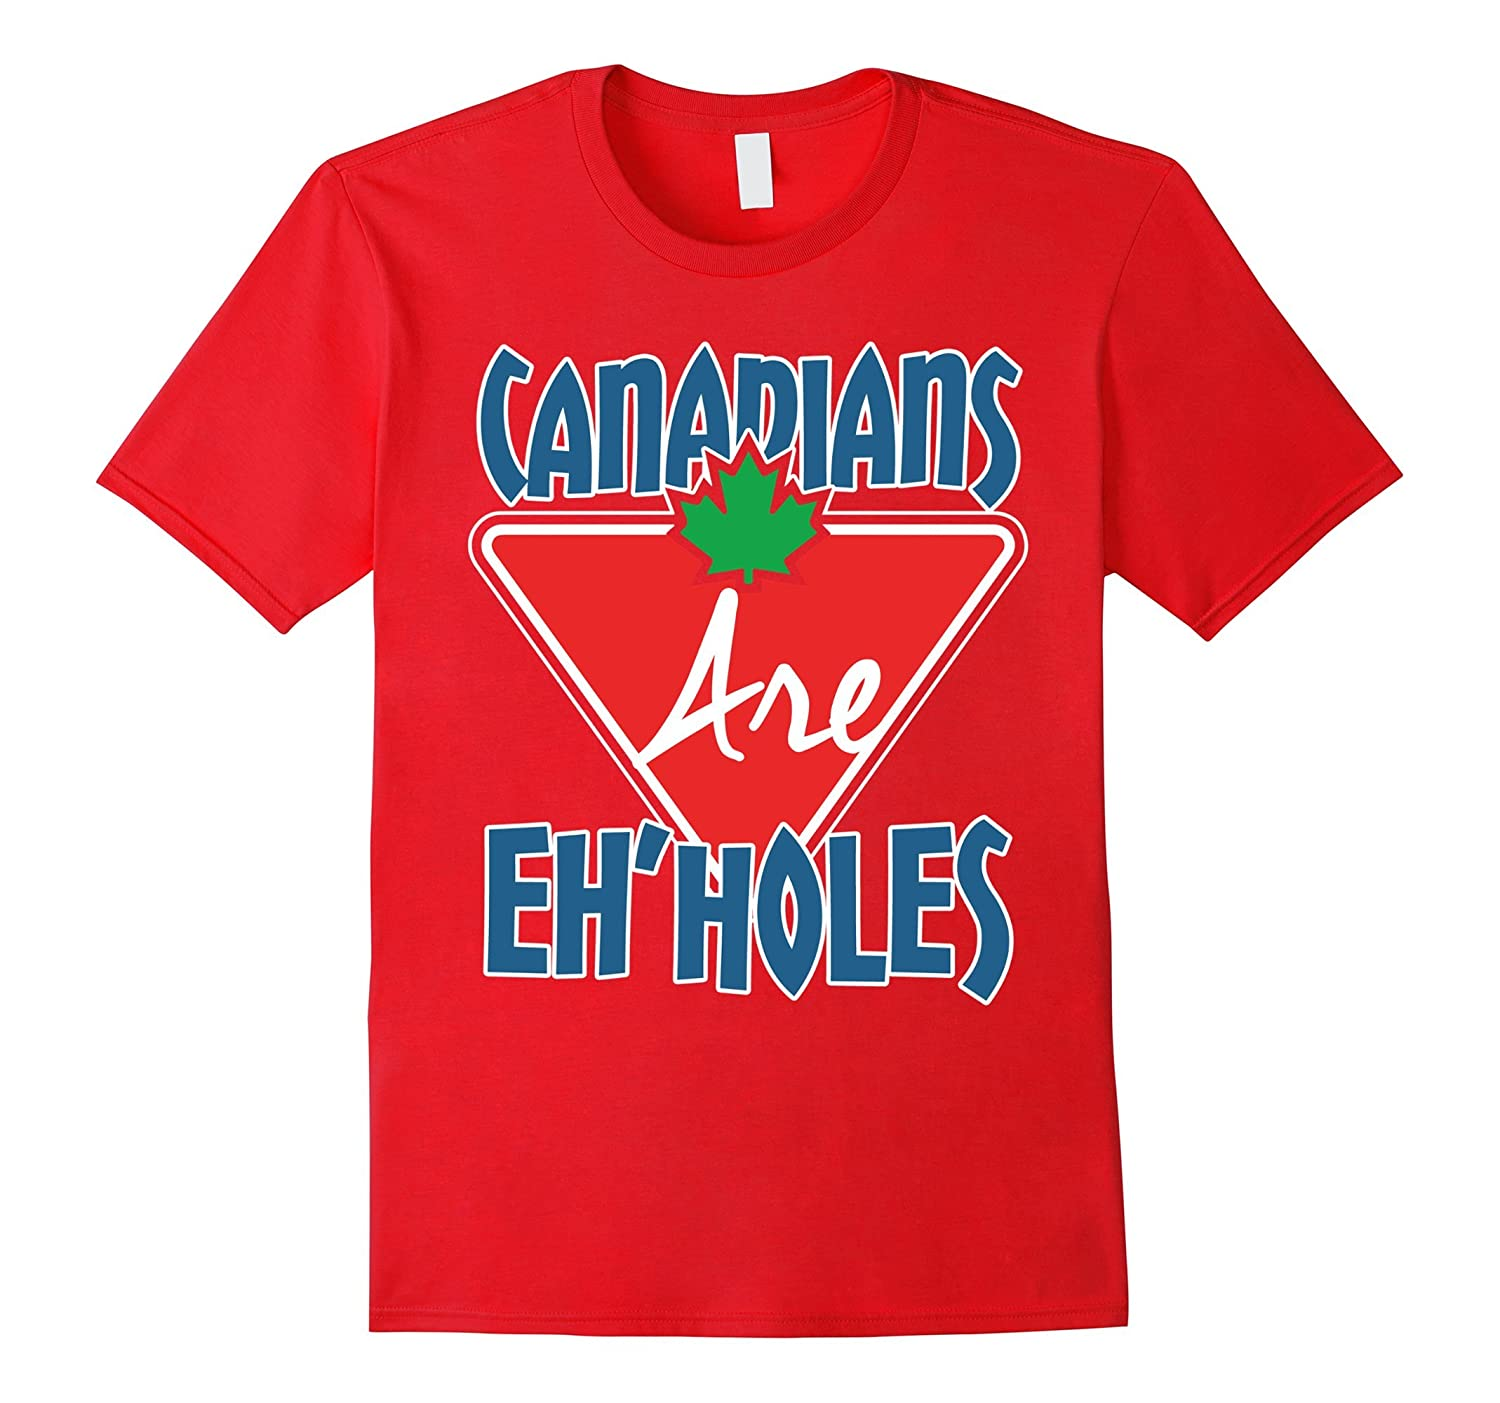 Canadians Are EhHoles Funny Canadian Humor T-Shirt-Vaci